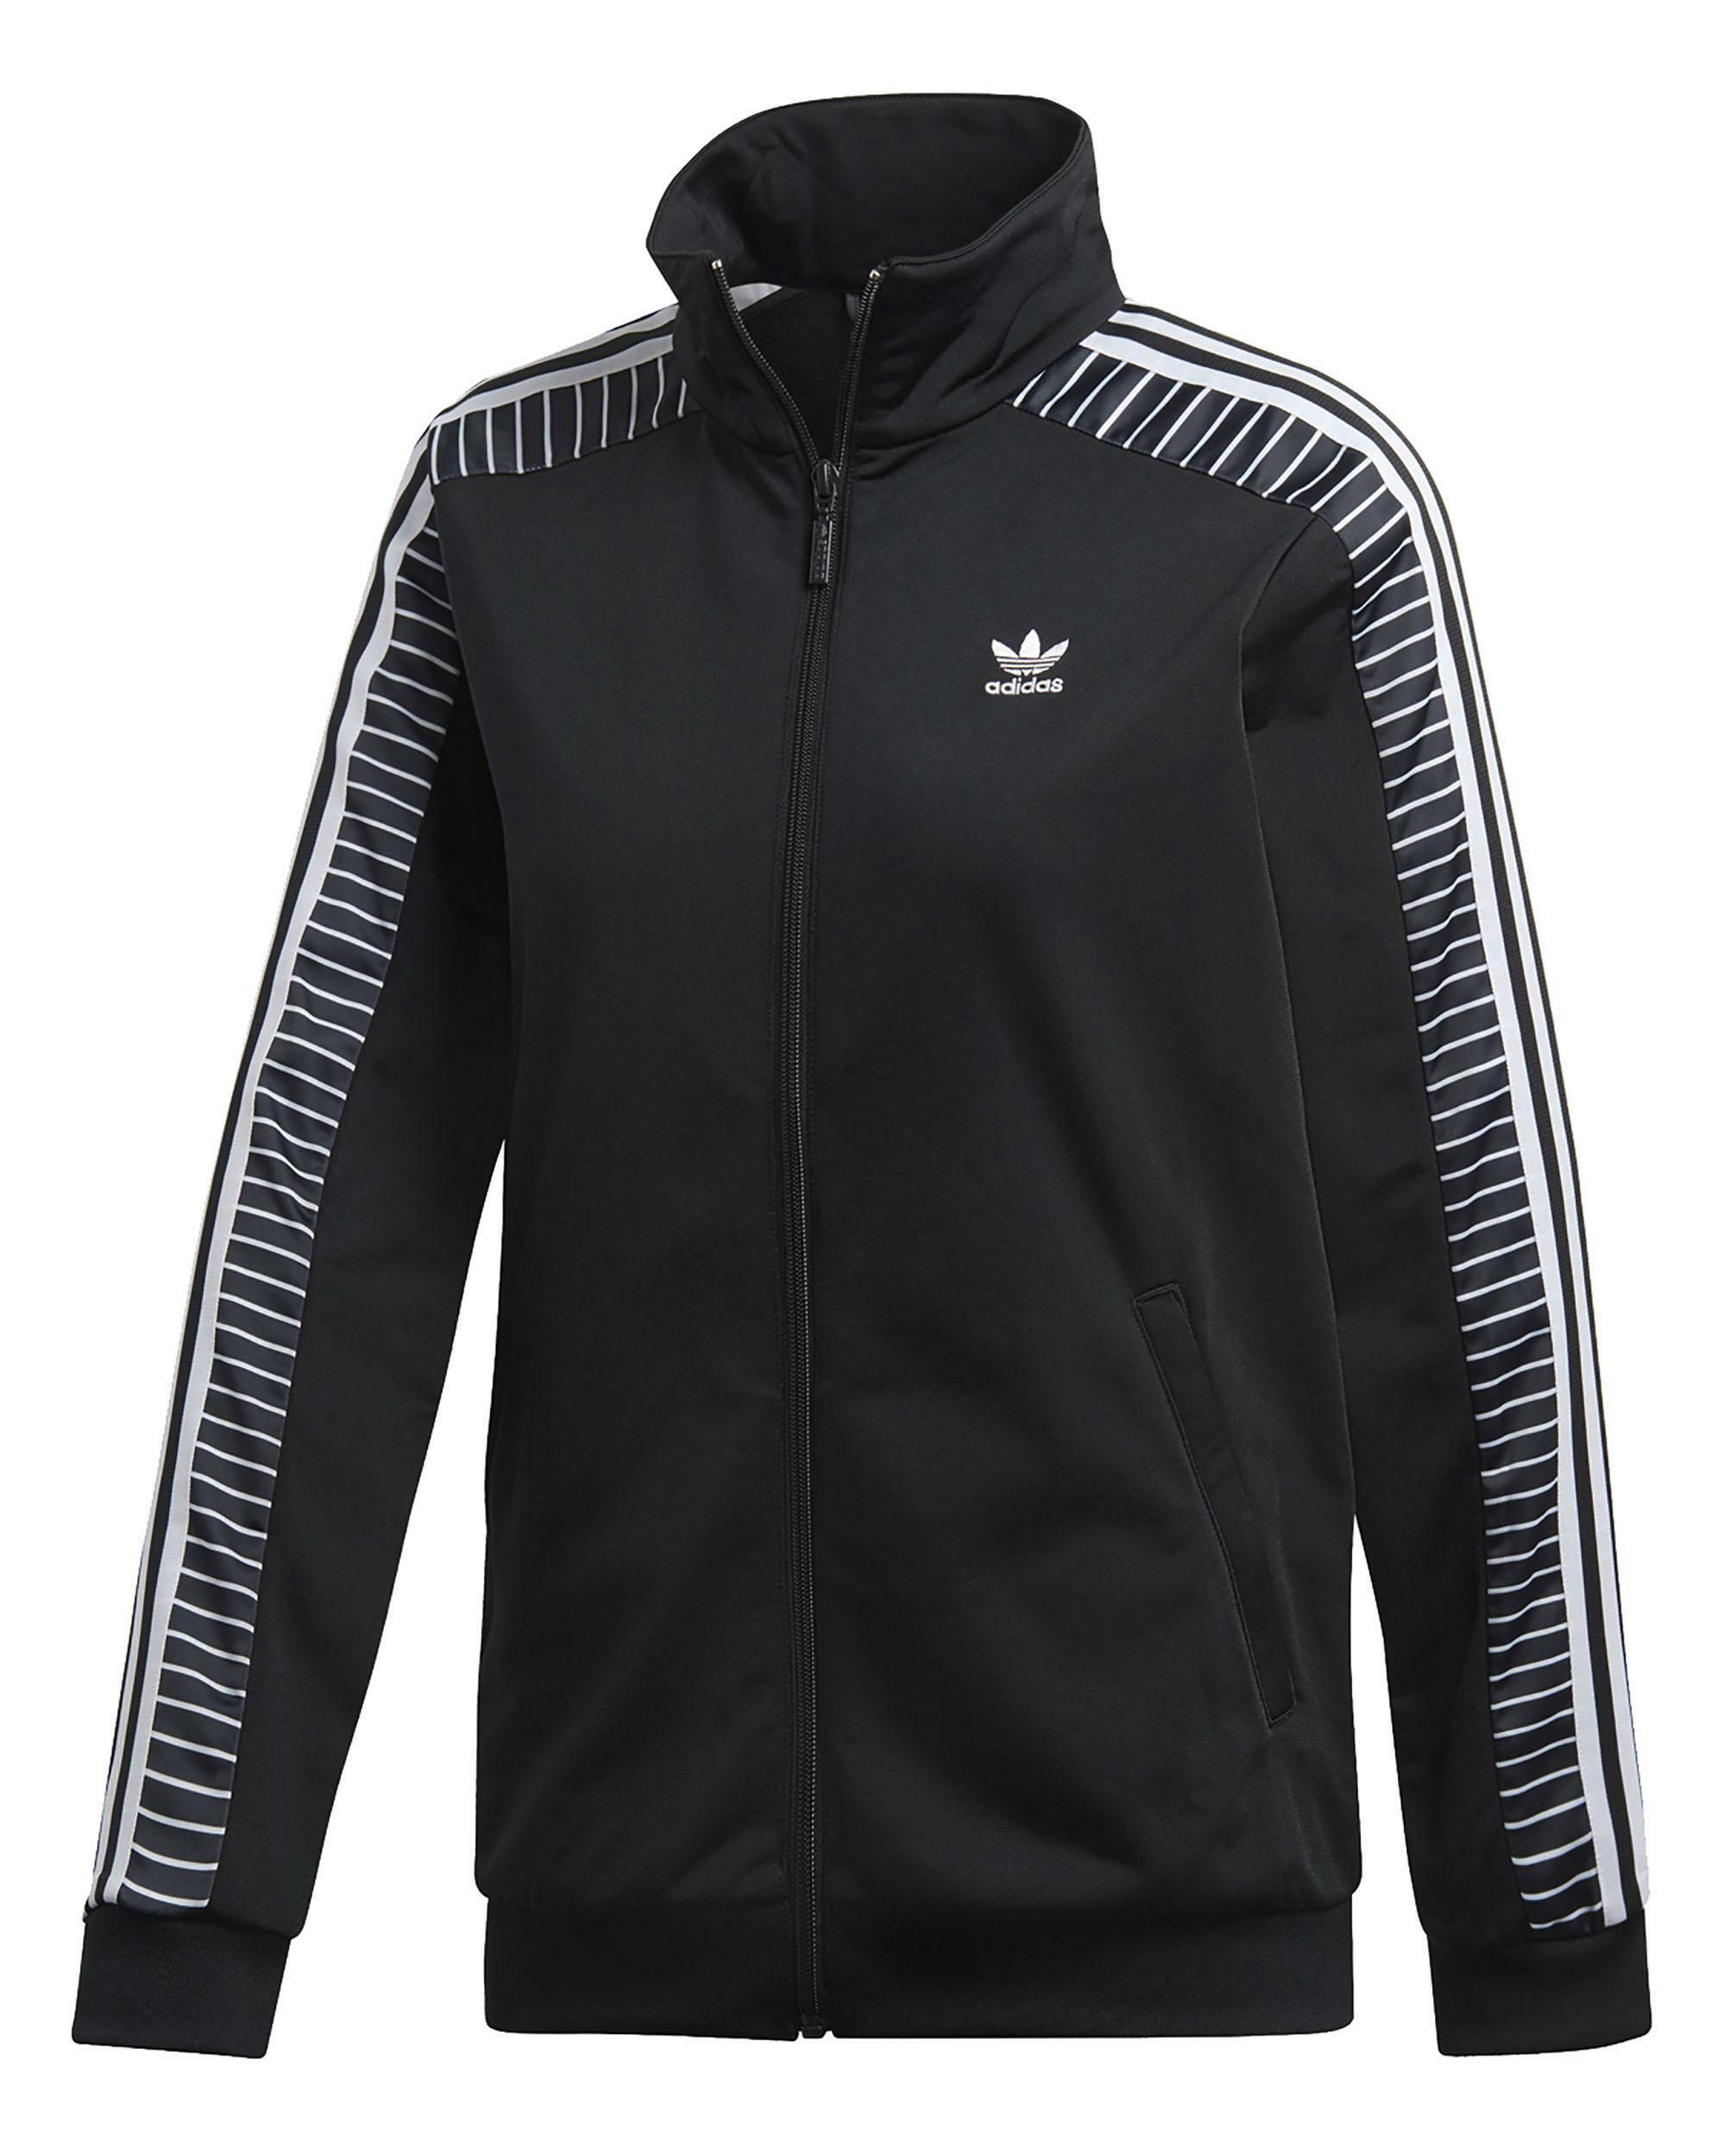 finest selection 21b9c c7d1b Adidas track top giacchetto donna nero du9879